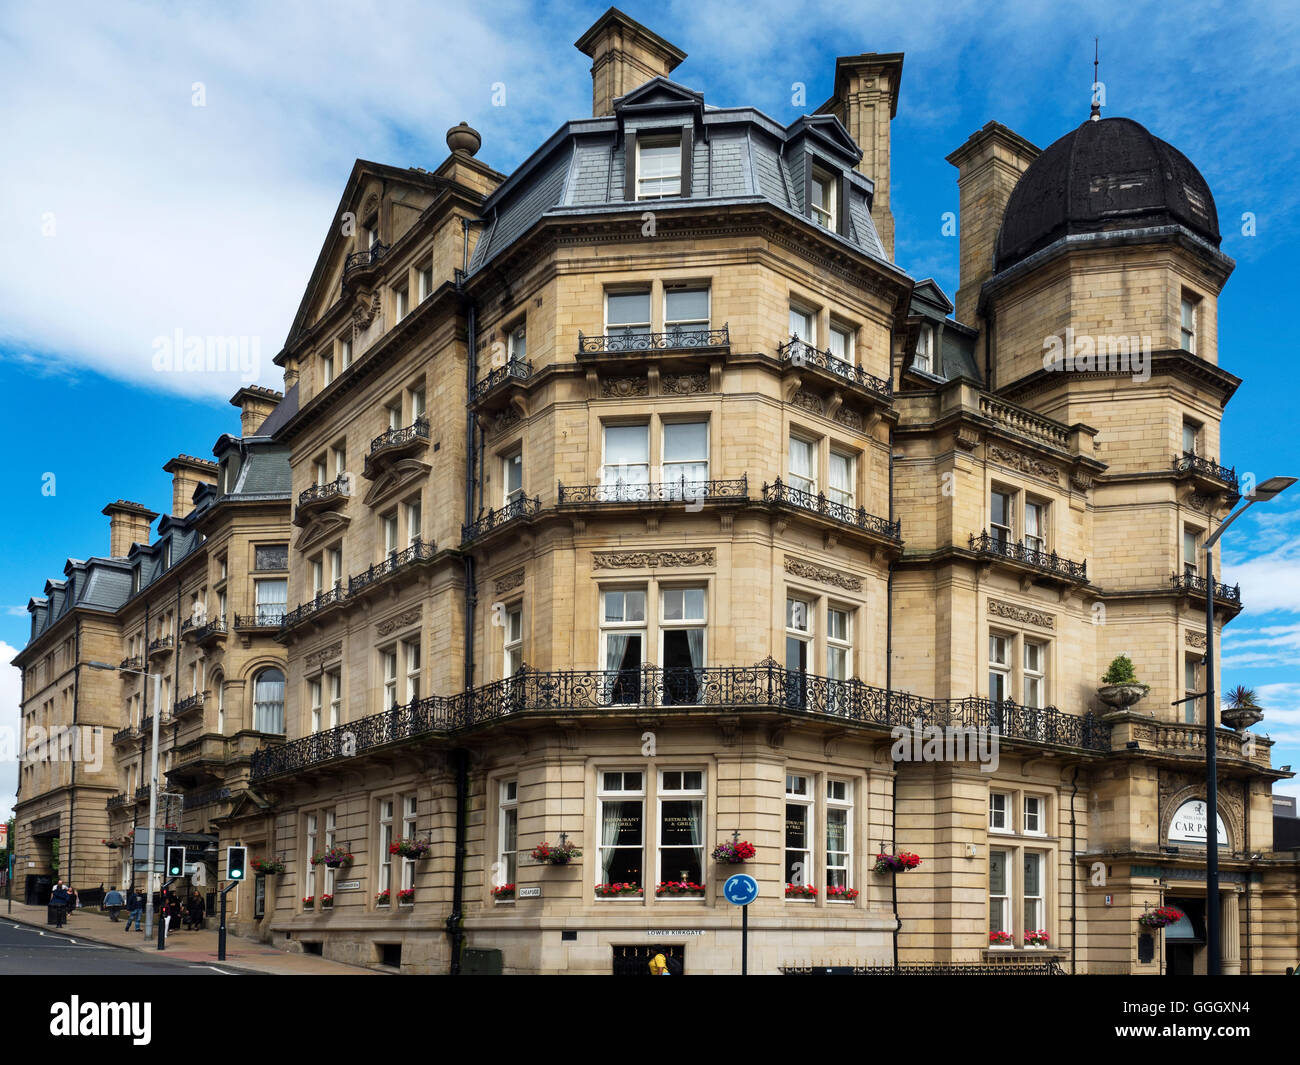 The Elegant Victorian Midland Hotel in Forster Square Bradford West Yorkshire England - Stock Image